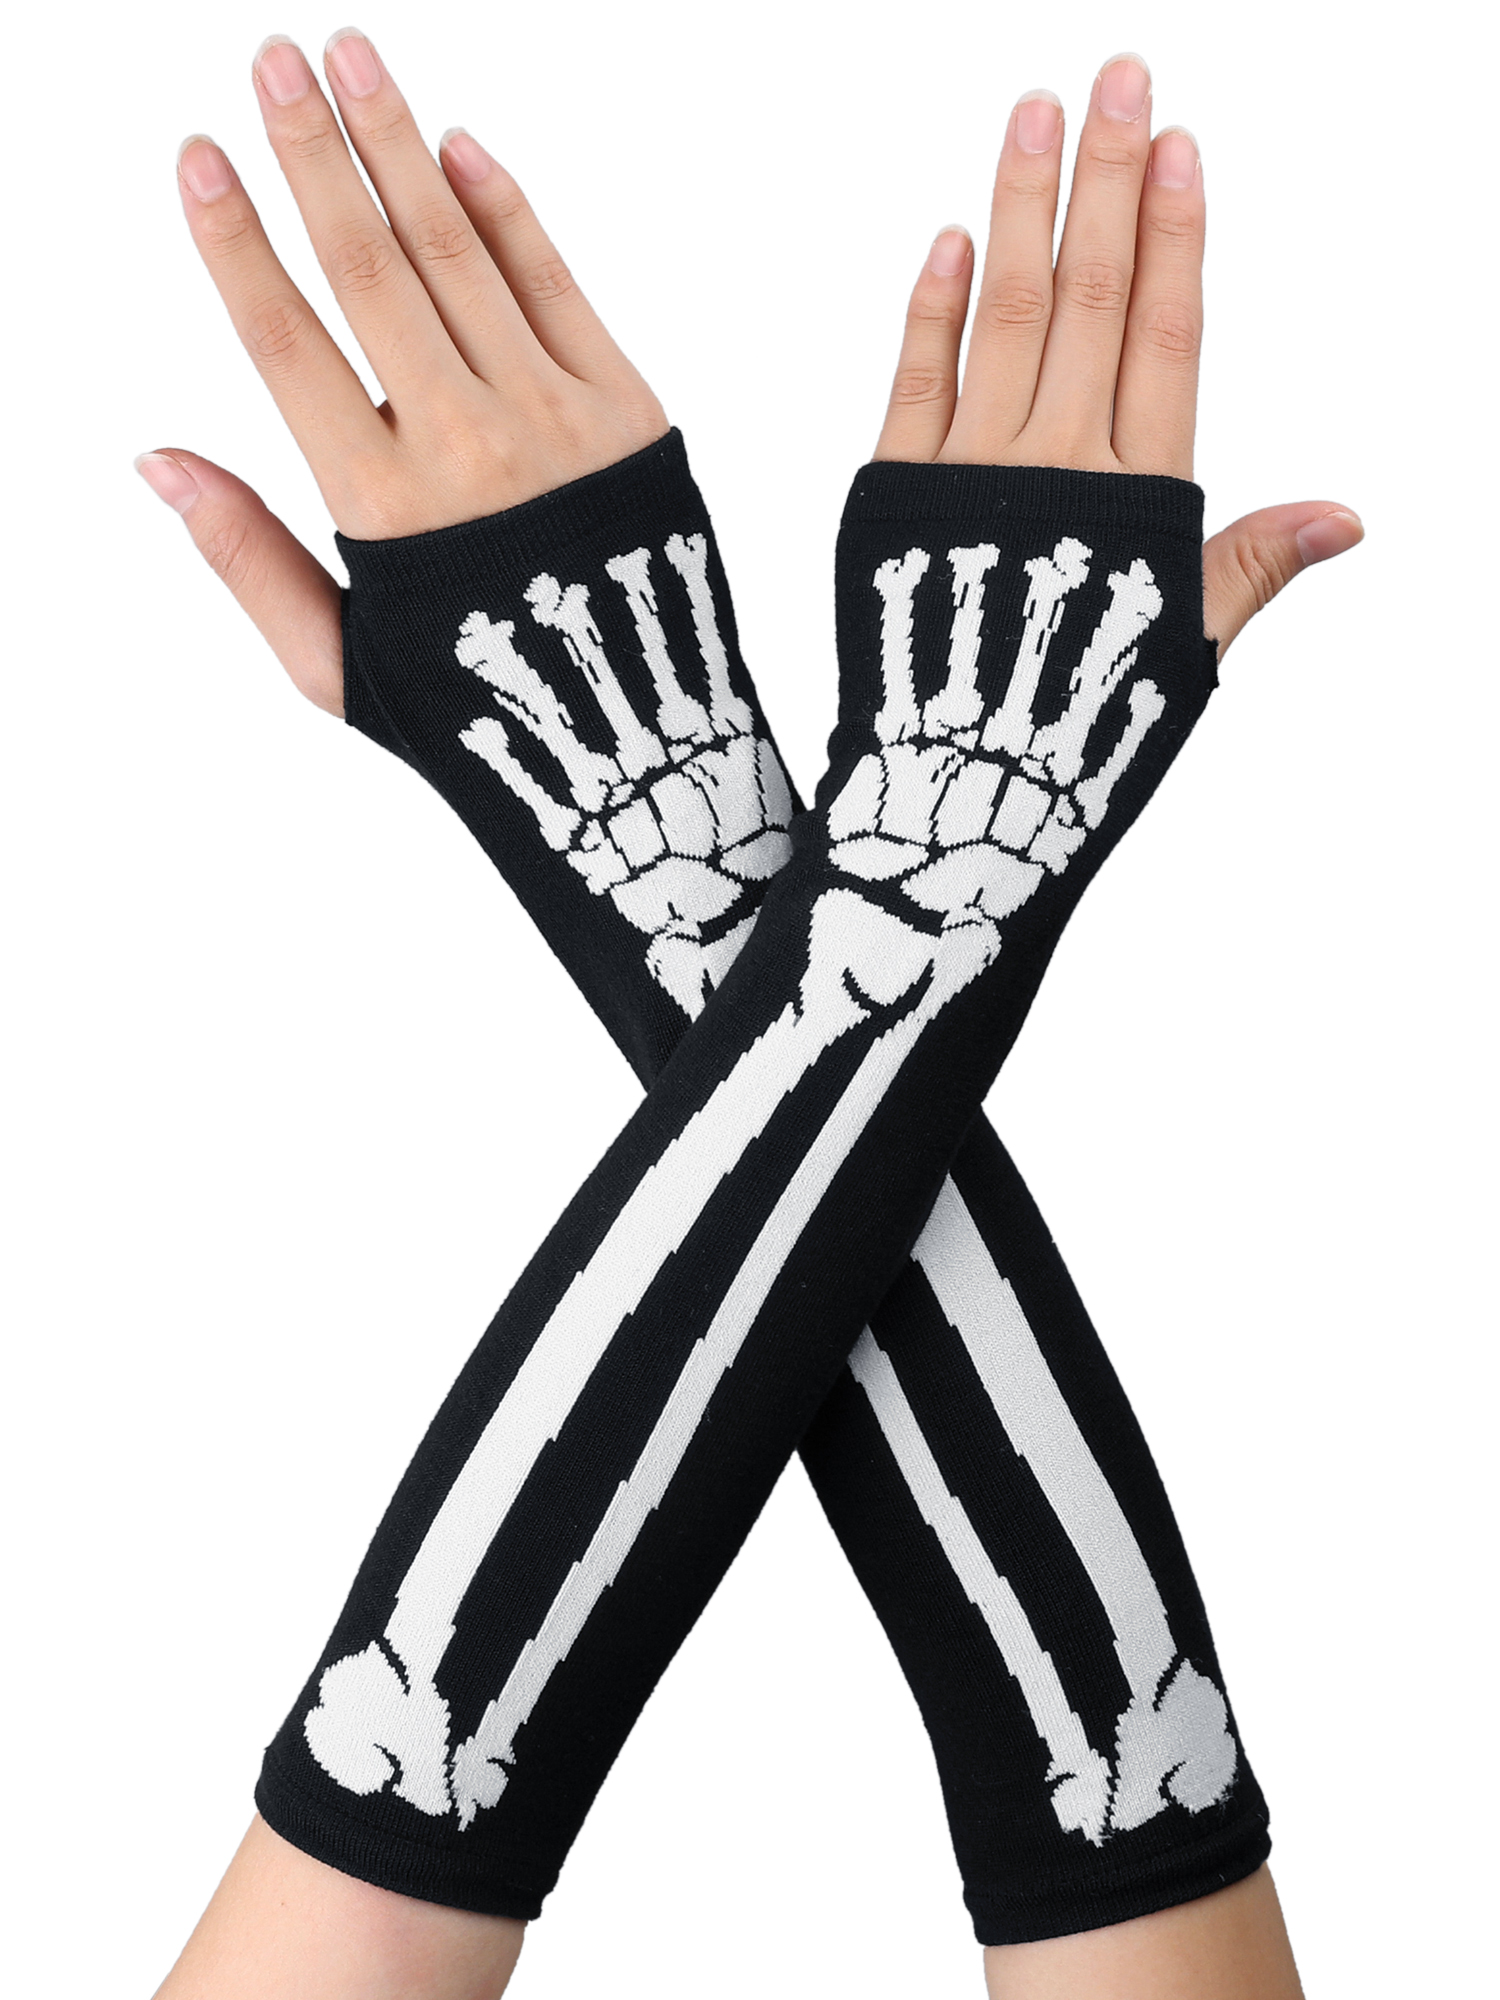 Women Bone Pattern Knitting Thumbhole Winter Fingerless Arm Long Gloves Black